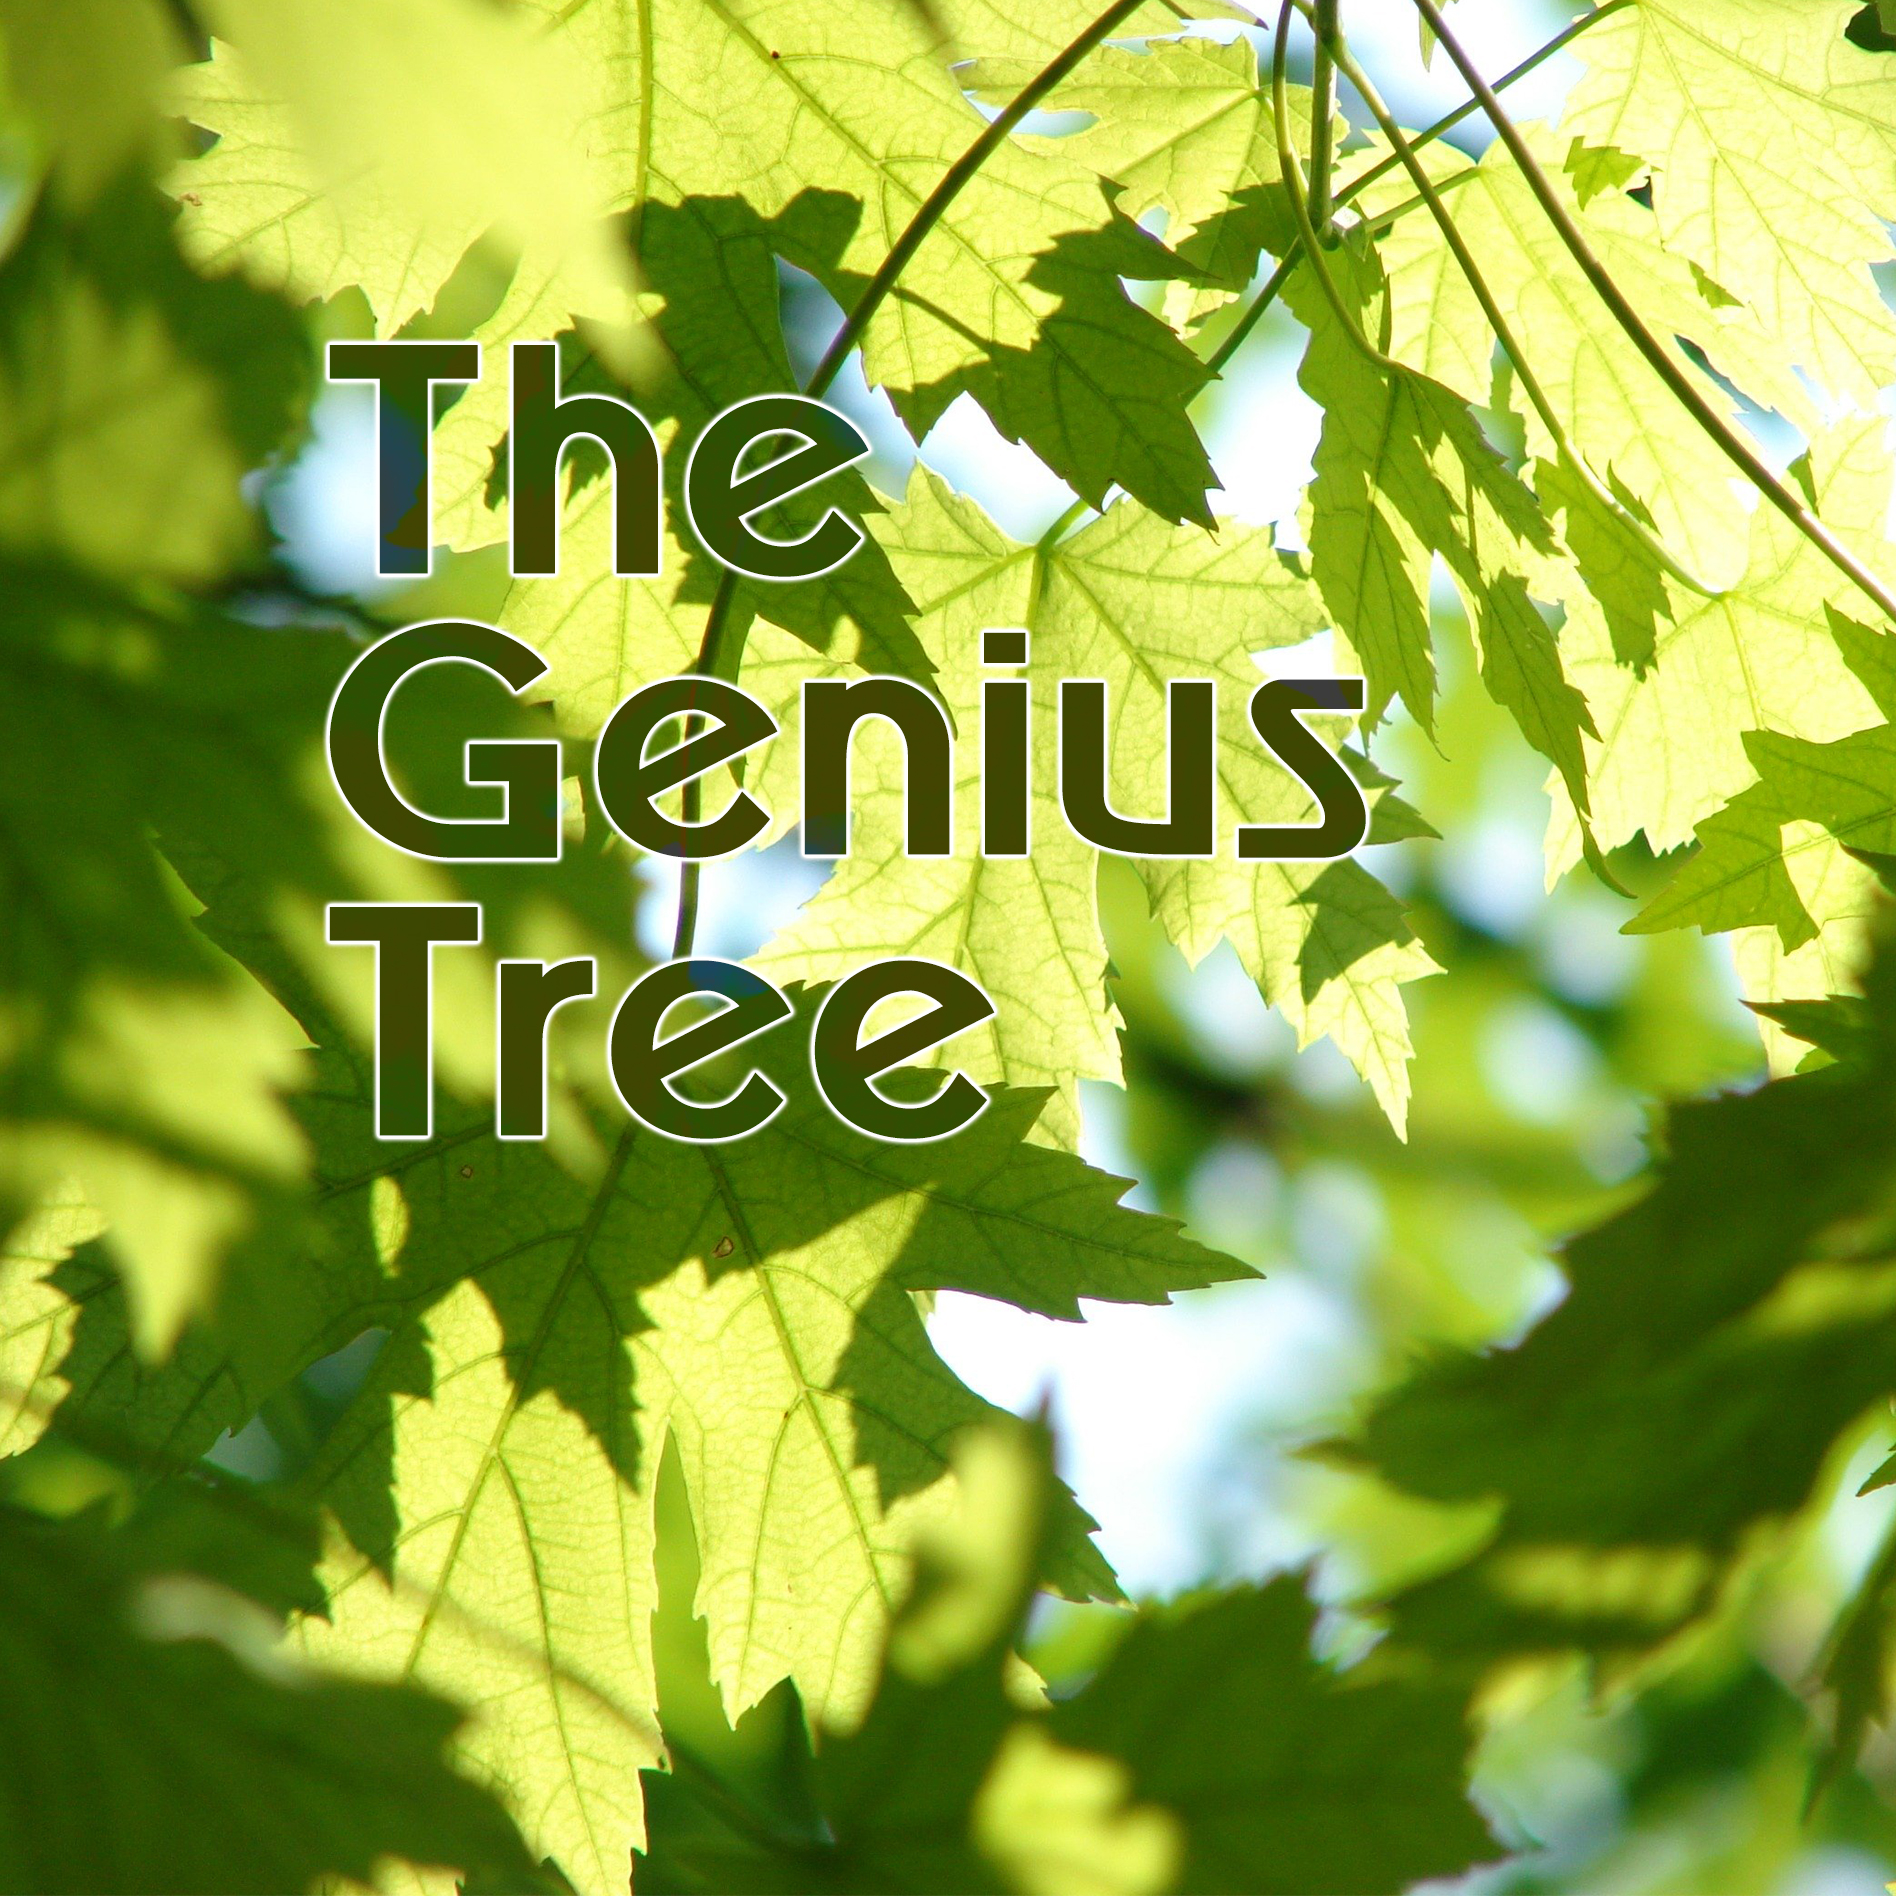 The Genius Tree session mentored by Ian Powell